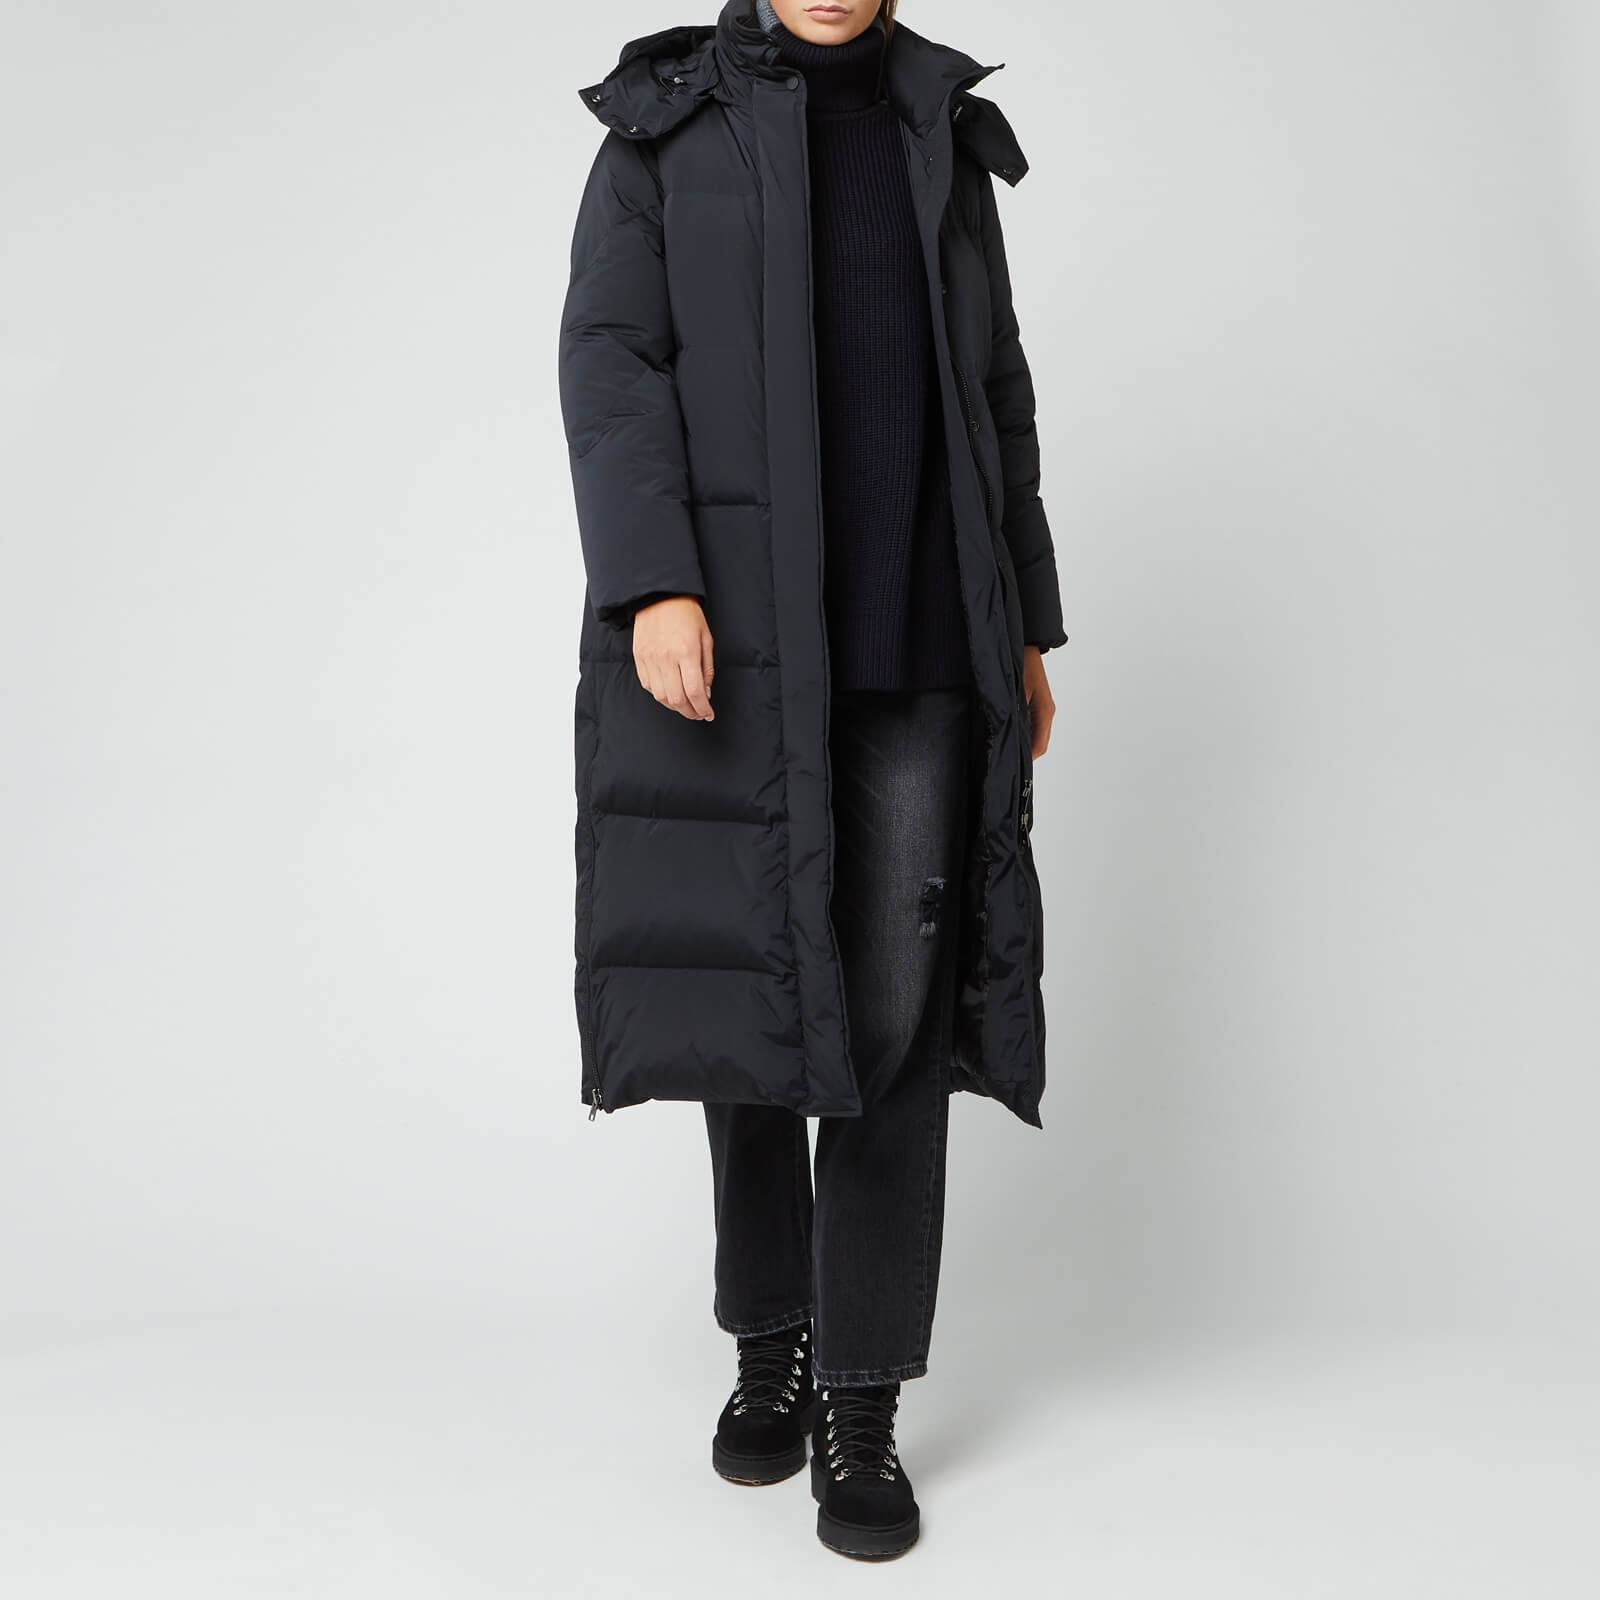 Woolrich Women's Aurora Long Parka - Black - M